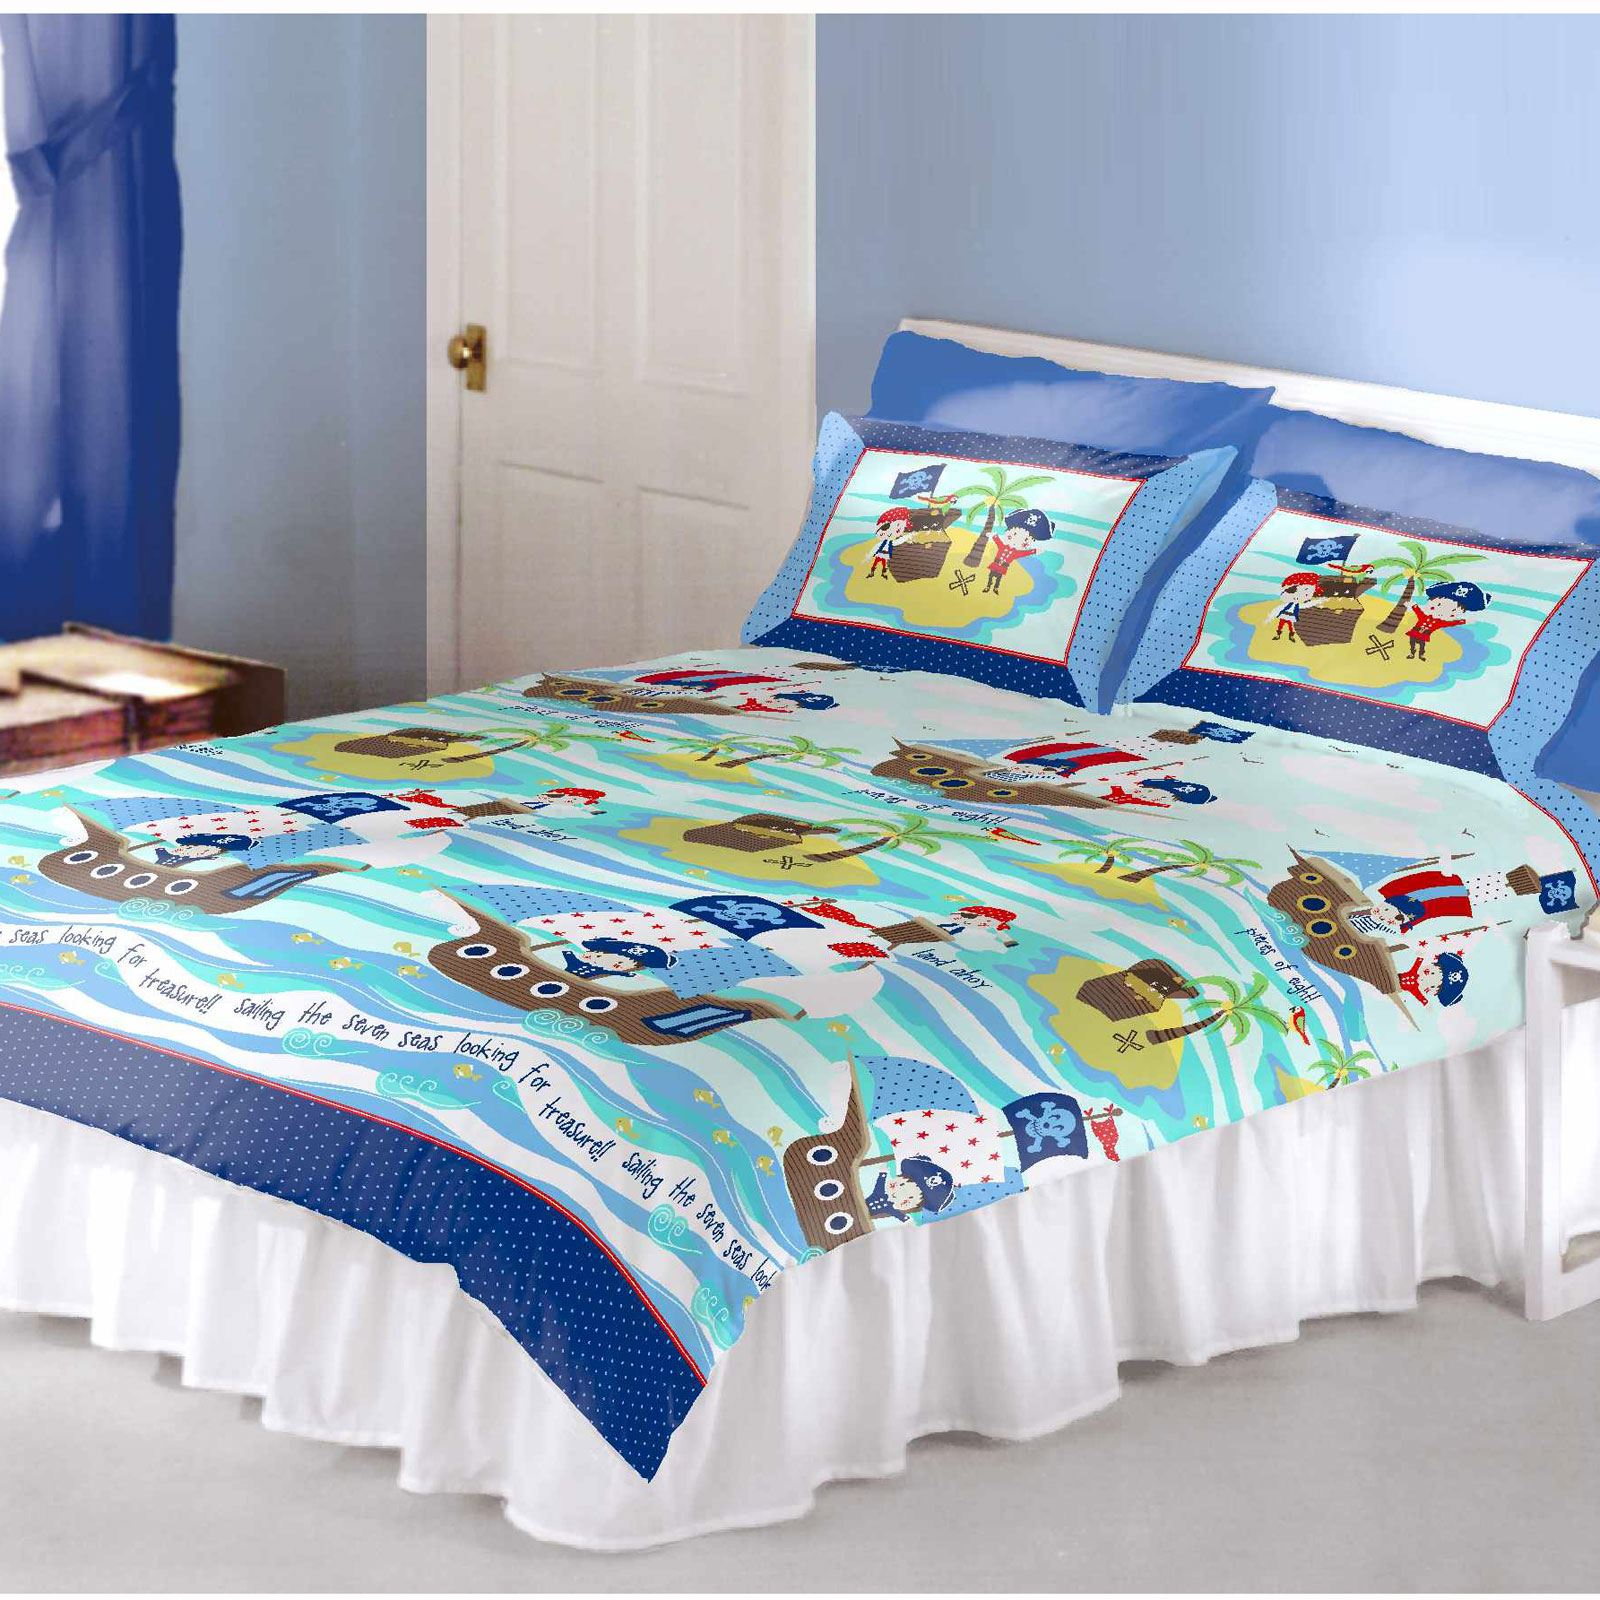 EXCLUSIVE DOUBLE DUVET COVER SETS KIDS DESIGNS BEDDING